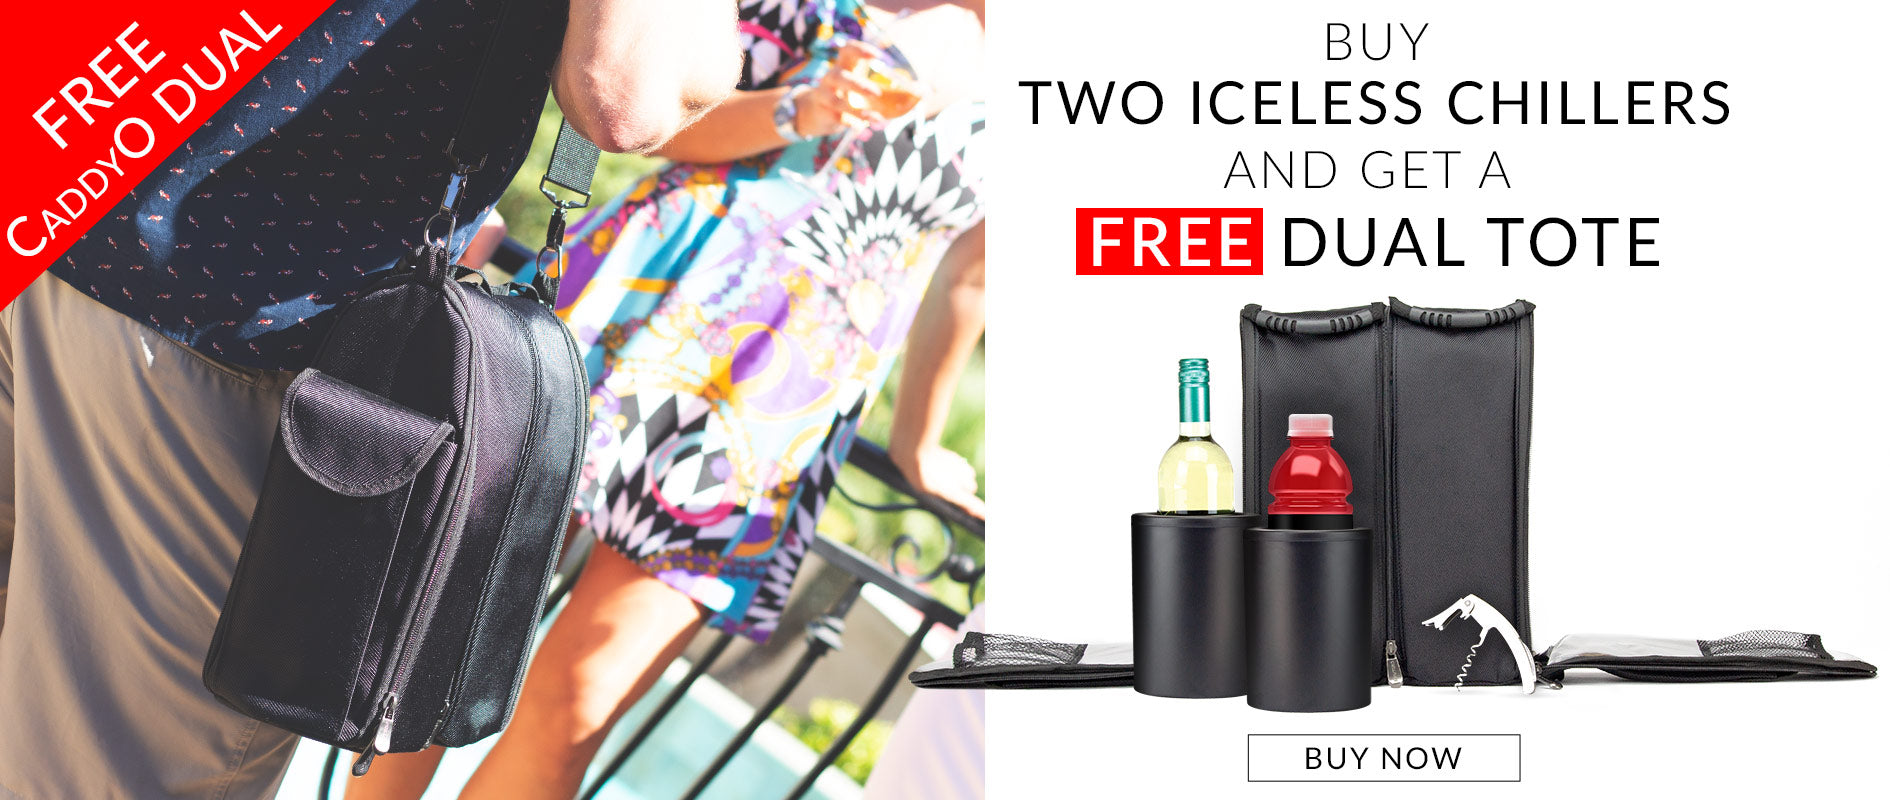 FREE CaddyO Dual Tote with Two Iceless Wine Chillers